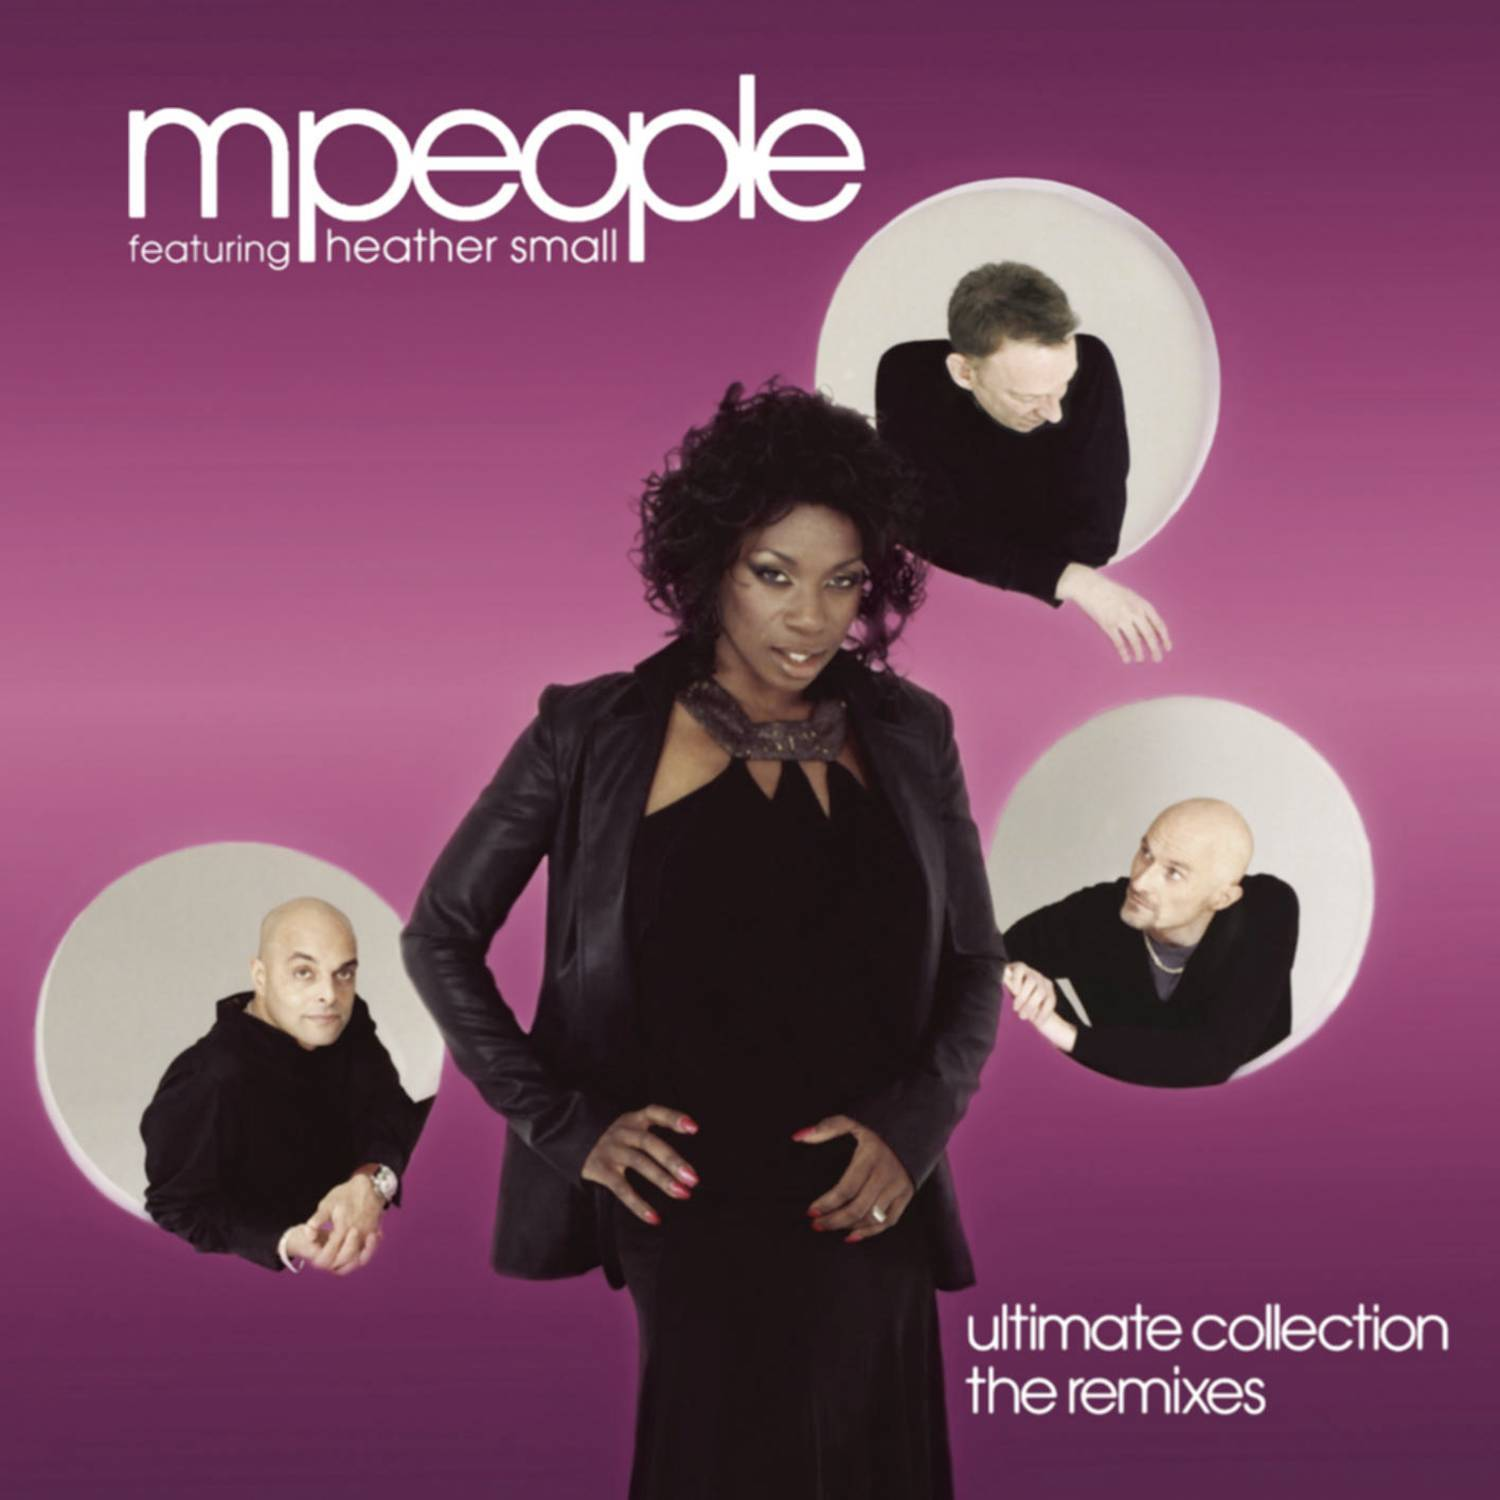 Ultimate Collection: The Remixes